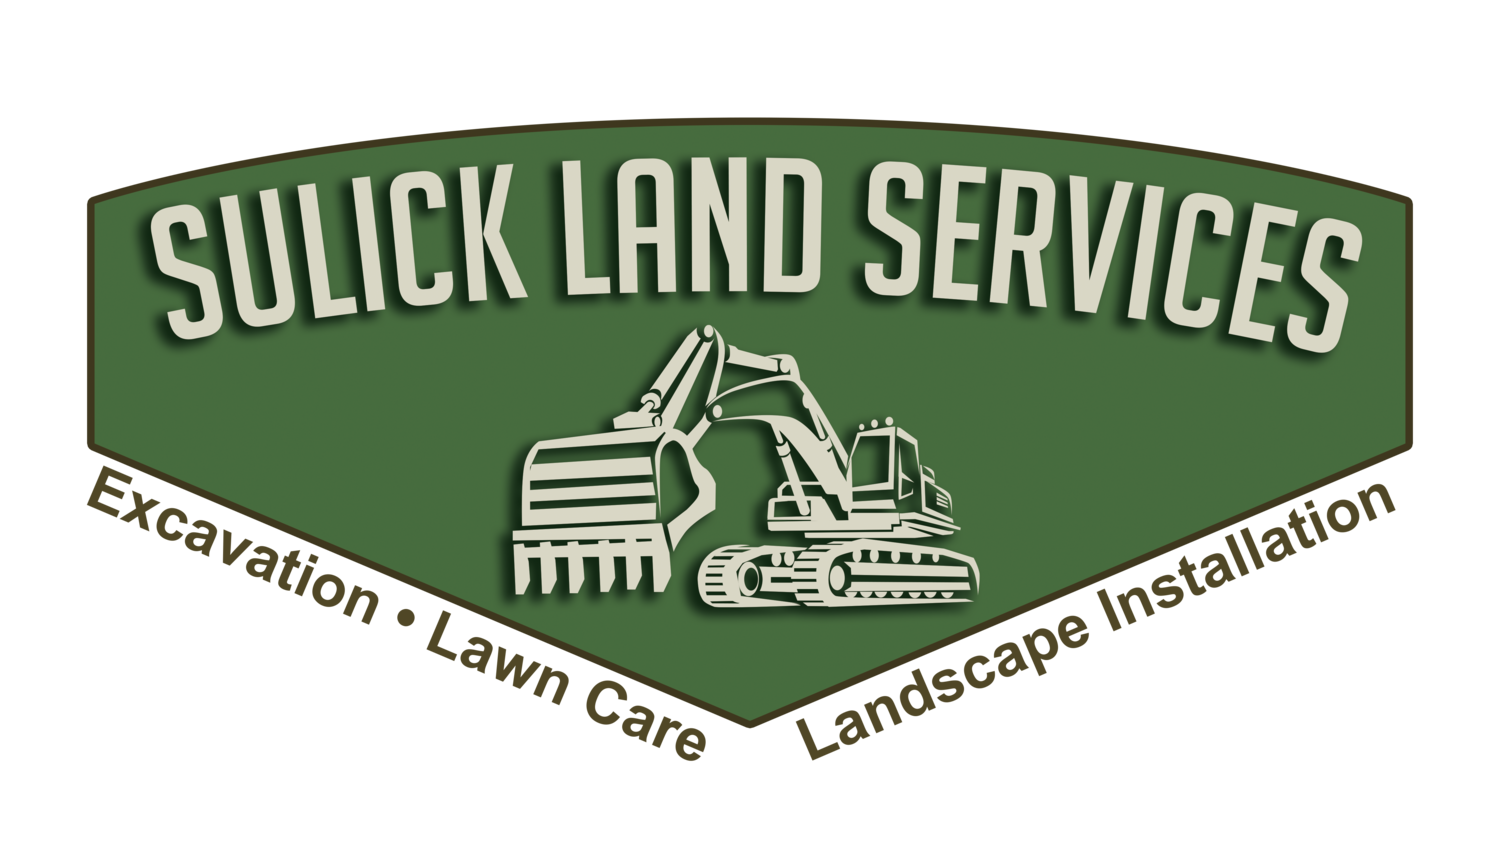 Sulick Land Services